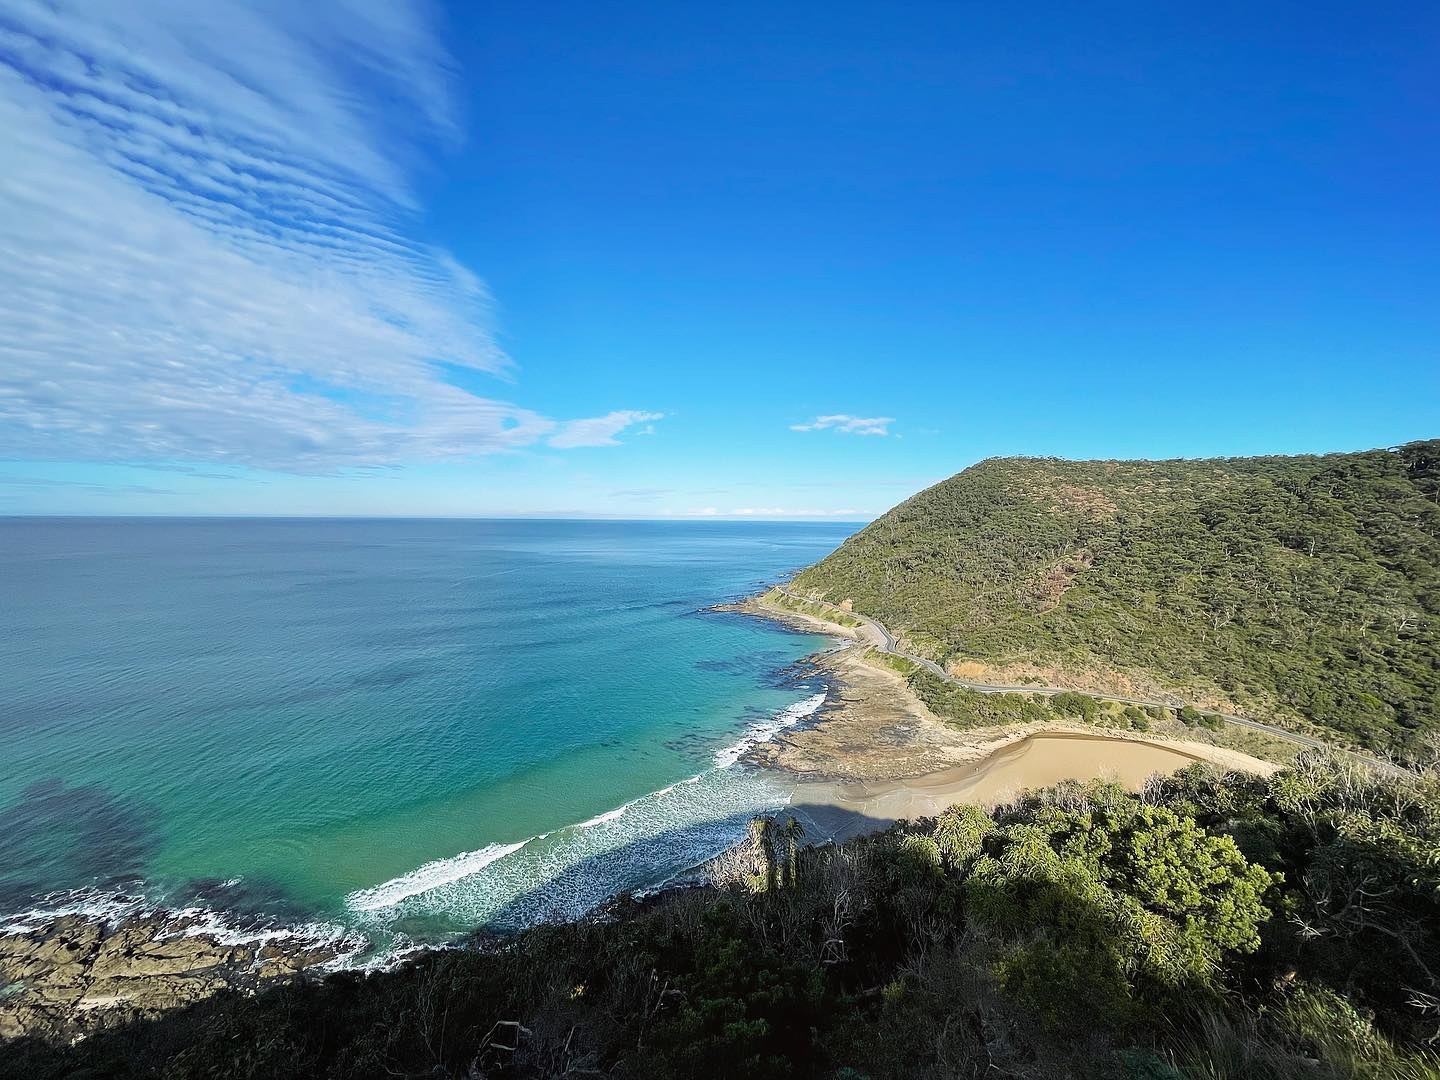 The Great Ocean Road from Teddy's Lookout